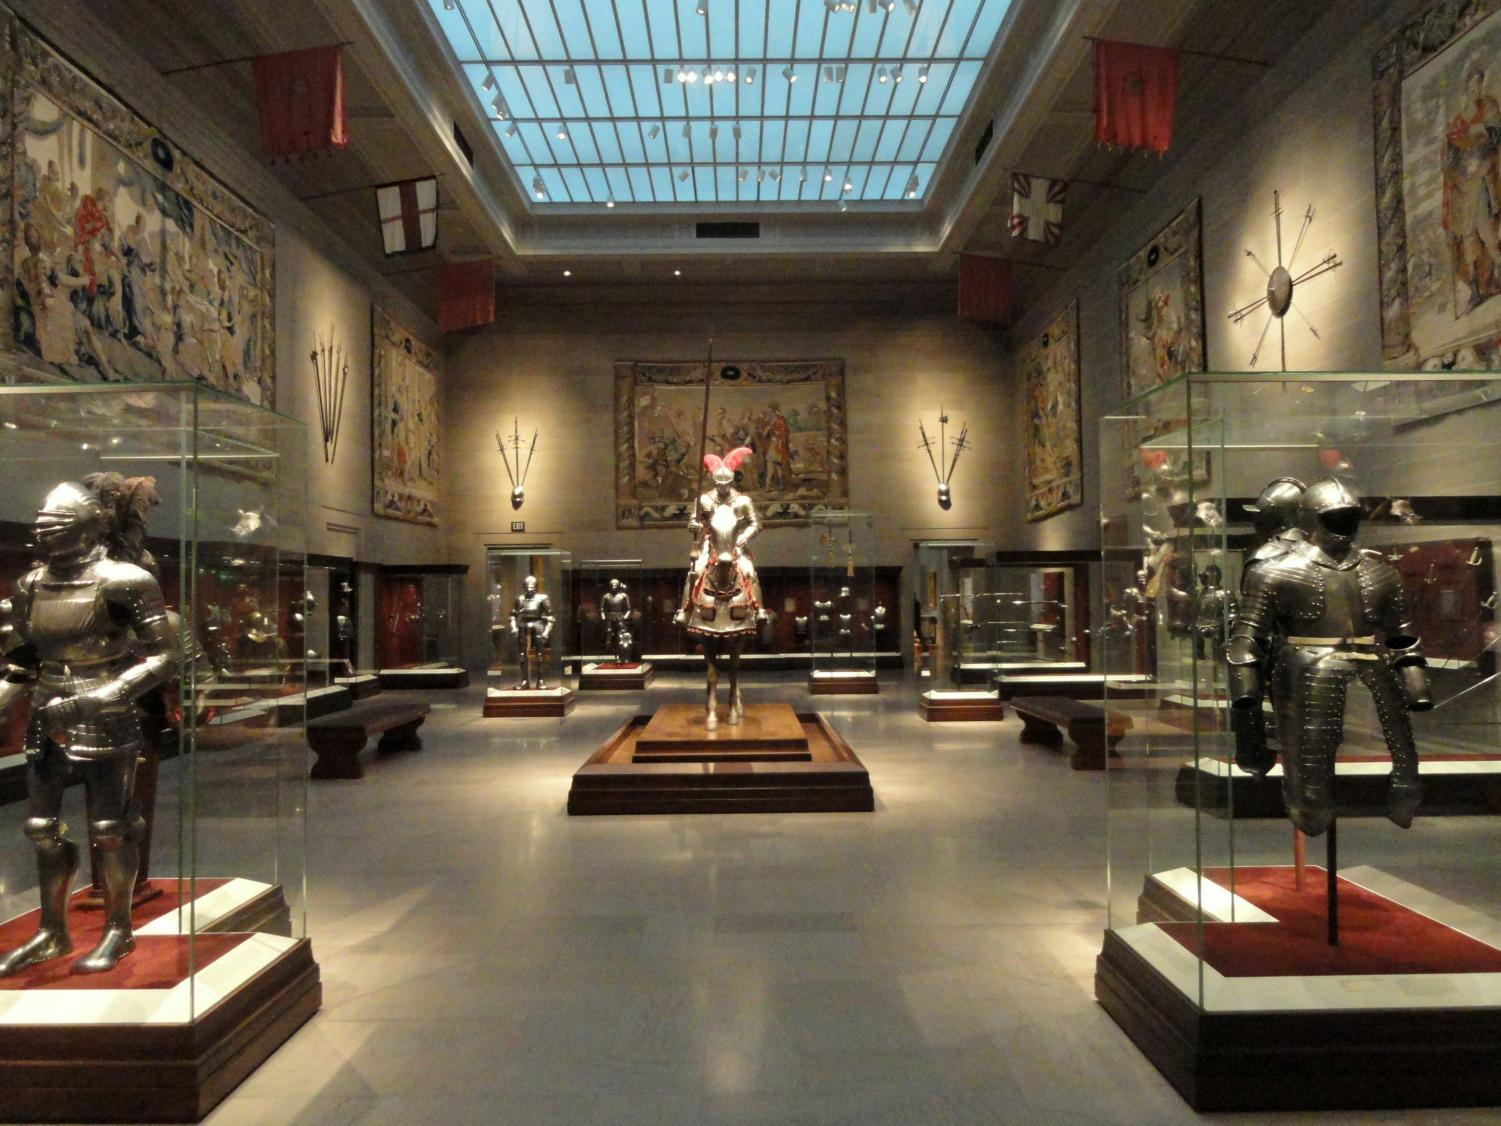 The Armor Court at the Cleveland Museum of Art.